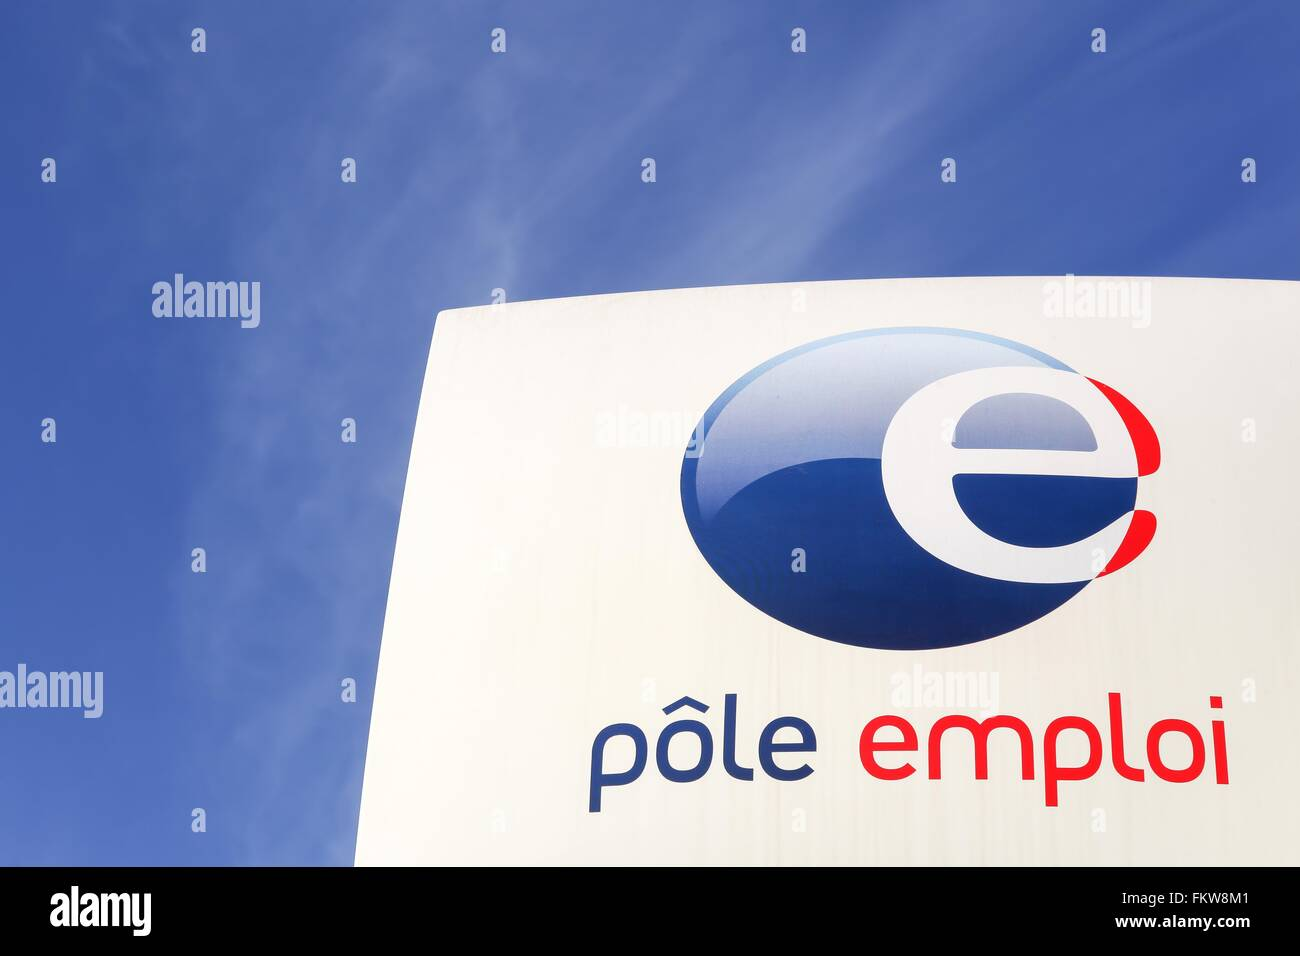 Pole emploi sign in France - Stock Image